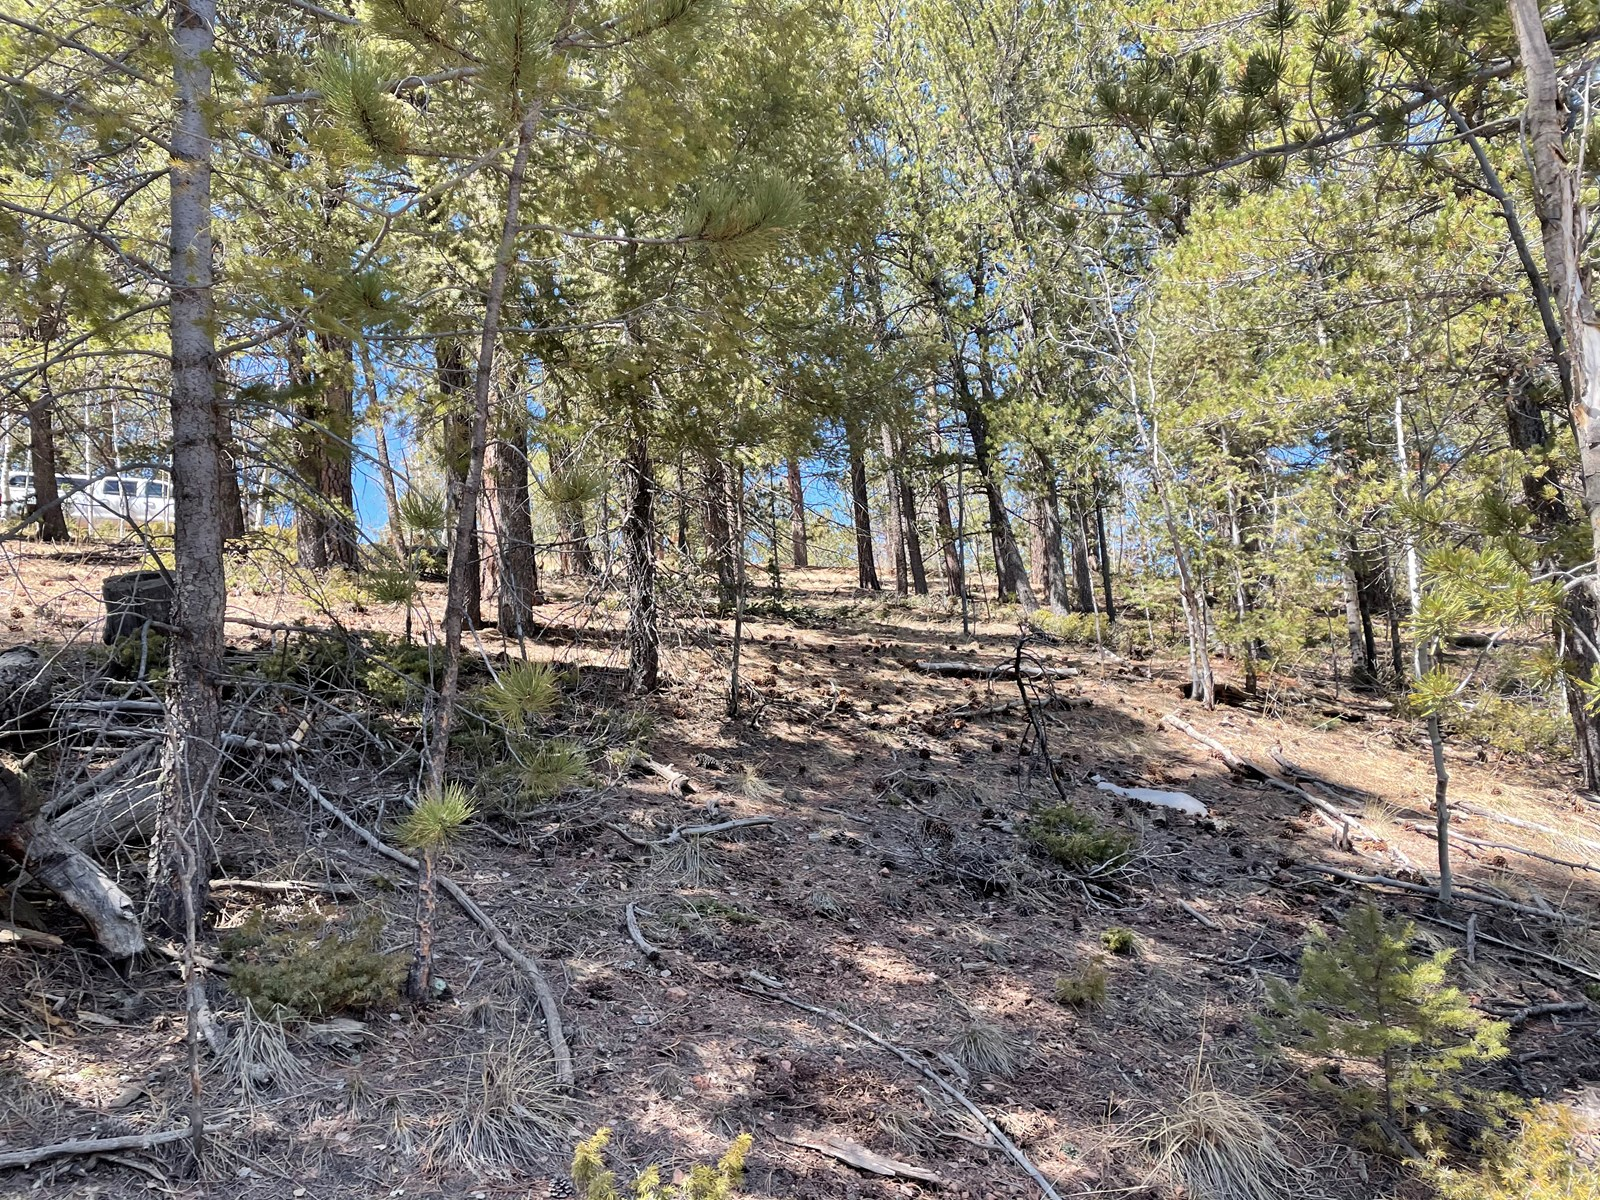 Land for sale in Colorado mountains